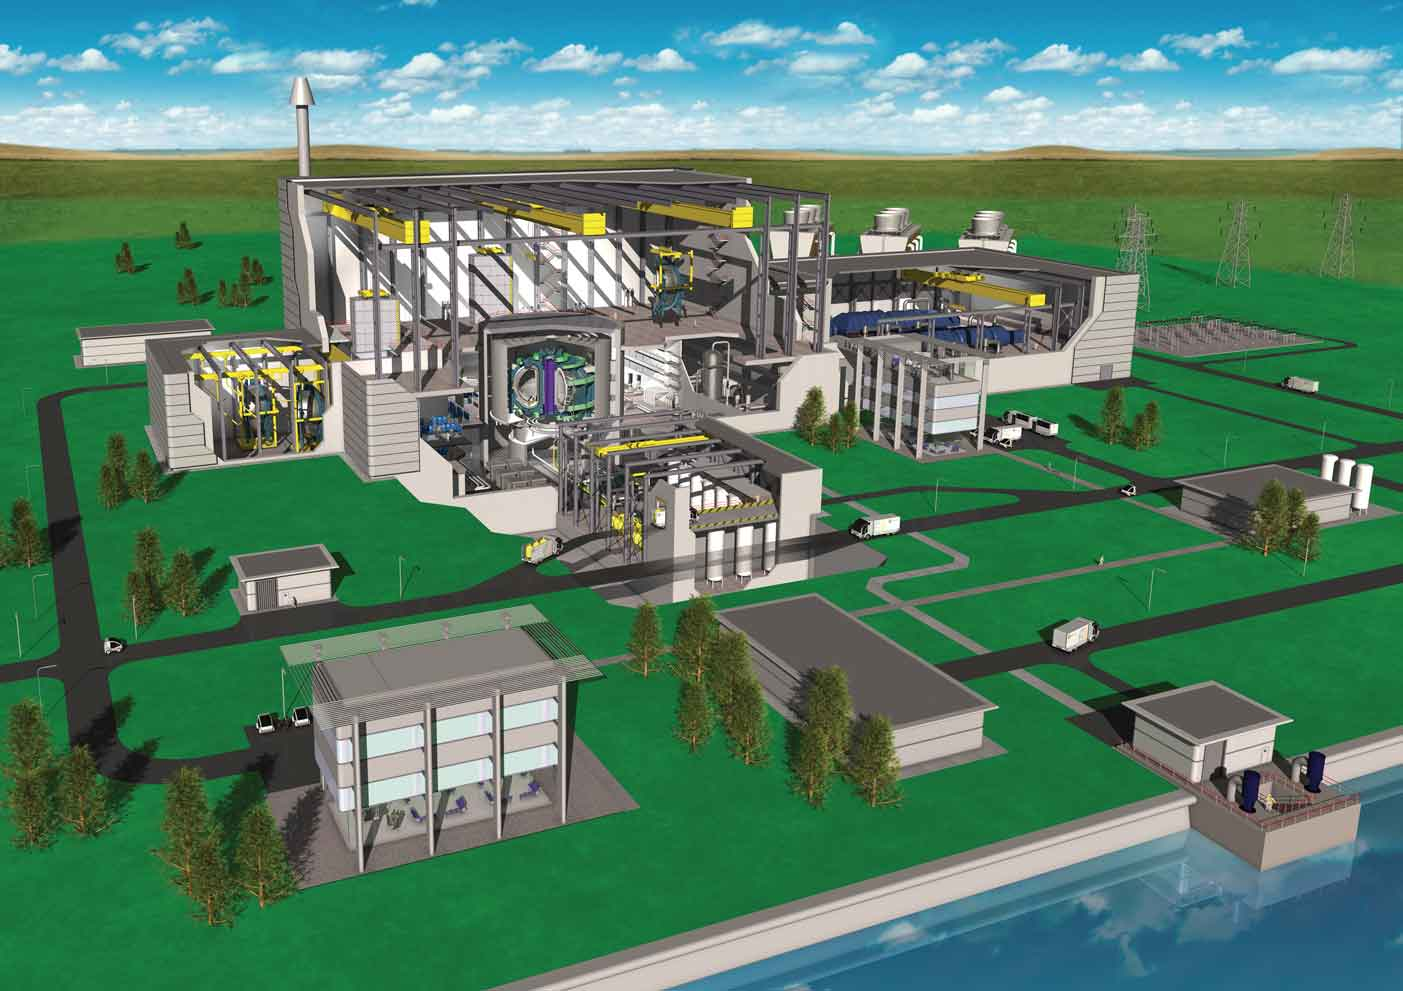 Artist's impression of a fusion power plant